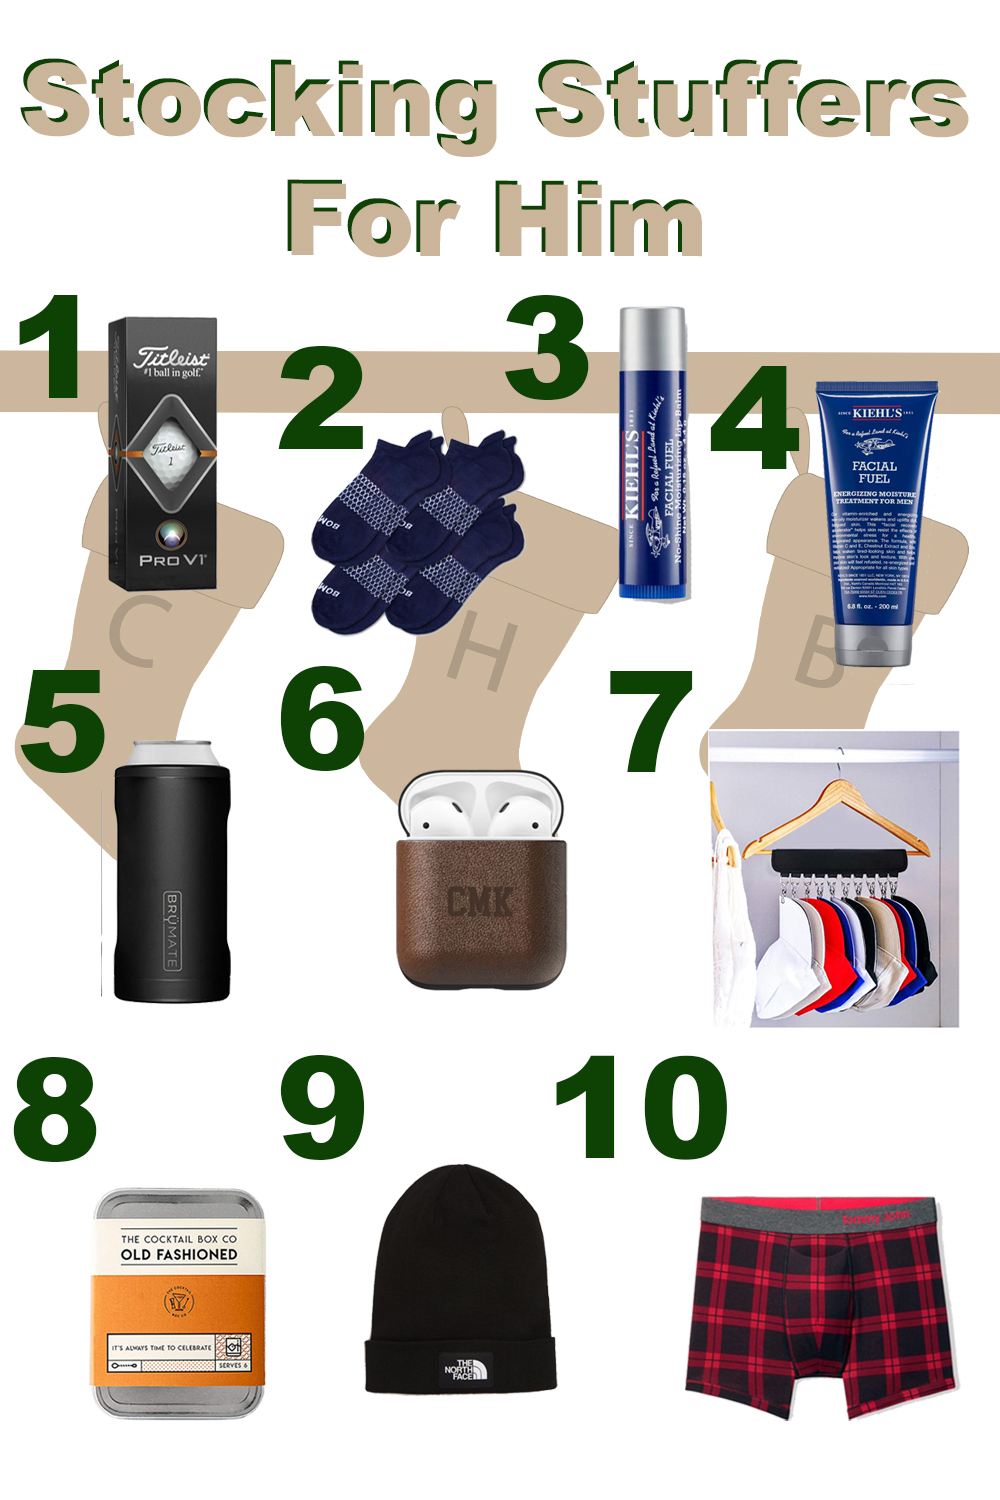 Holiday Gift Guide: Stocking Stuffers for Him